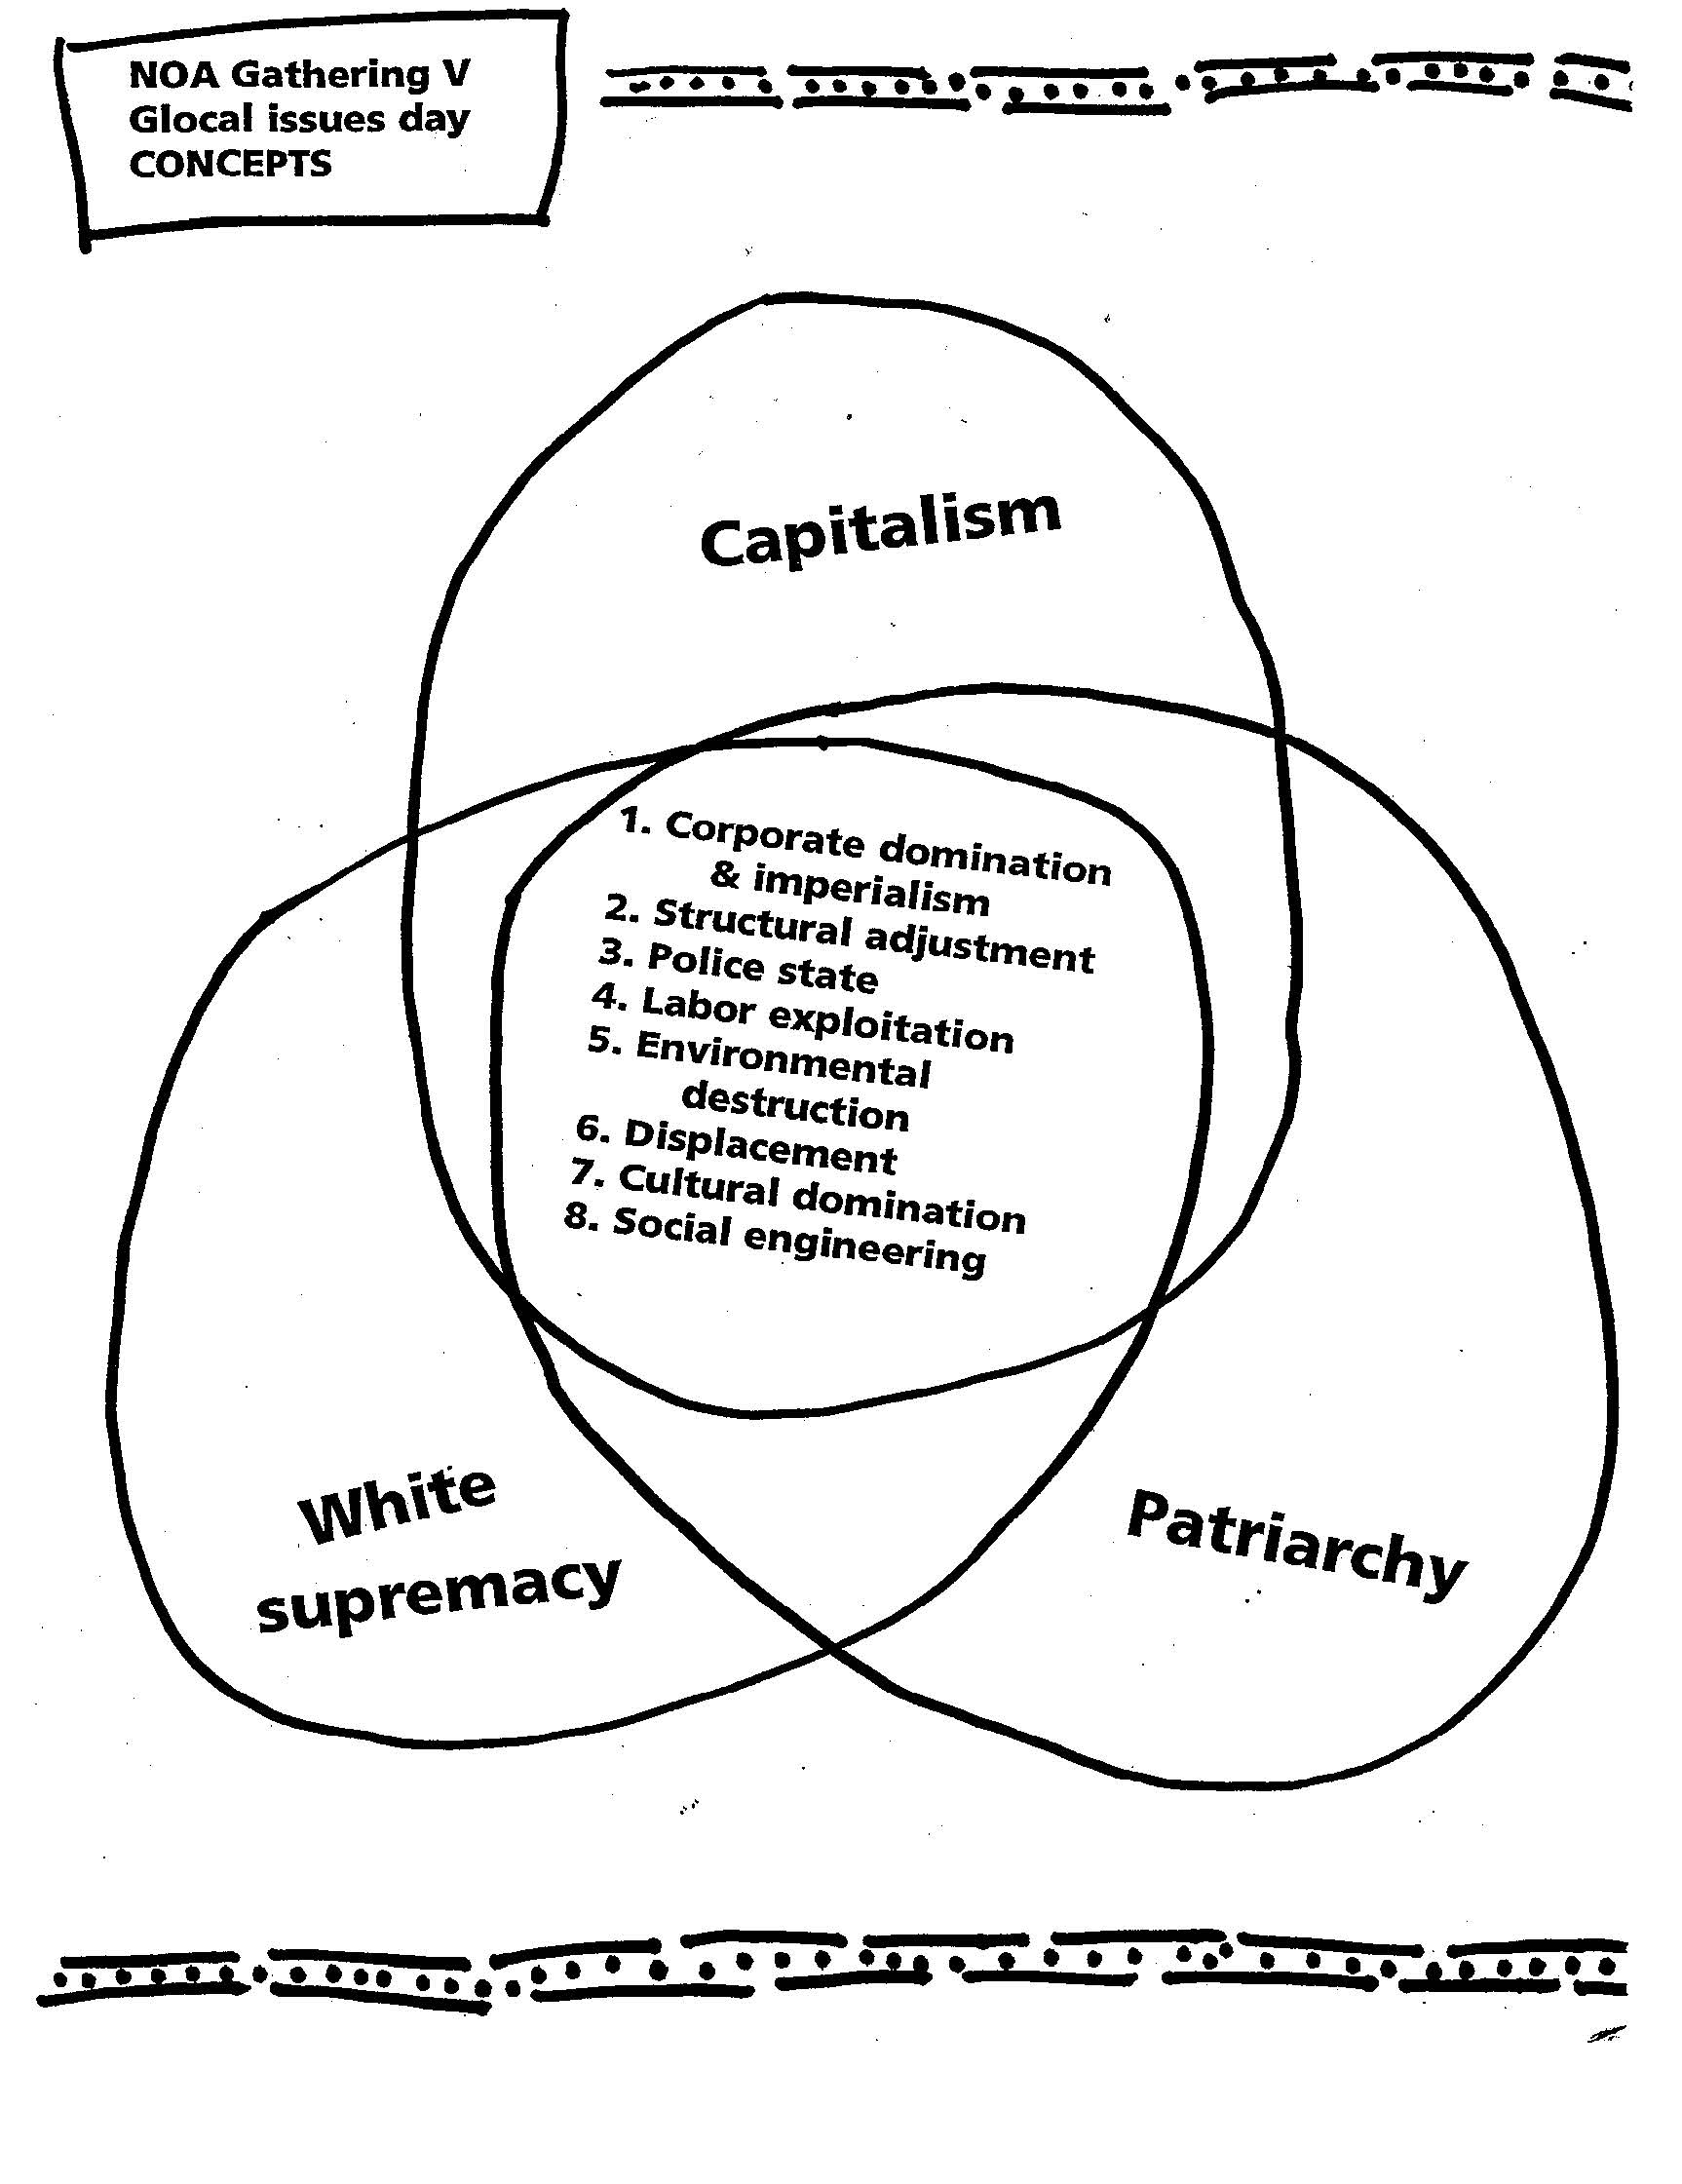 The Intersections of Oppression